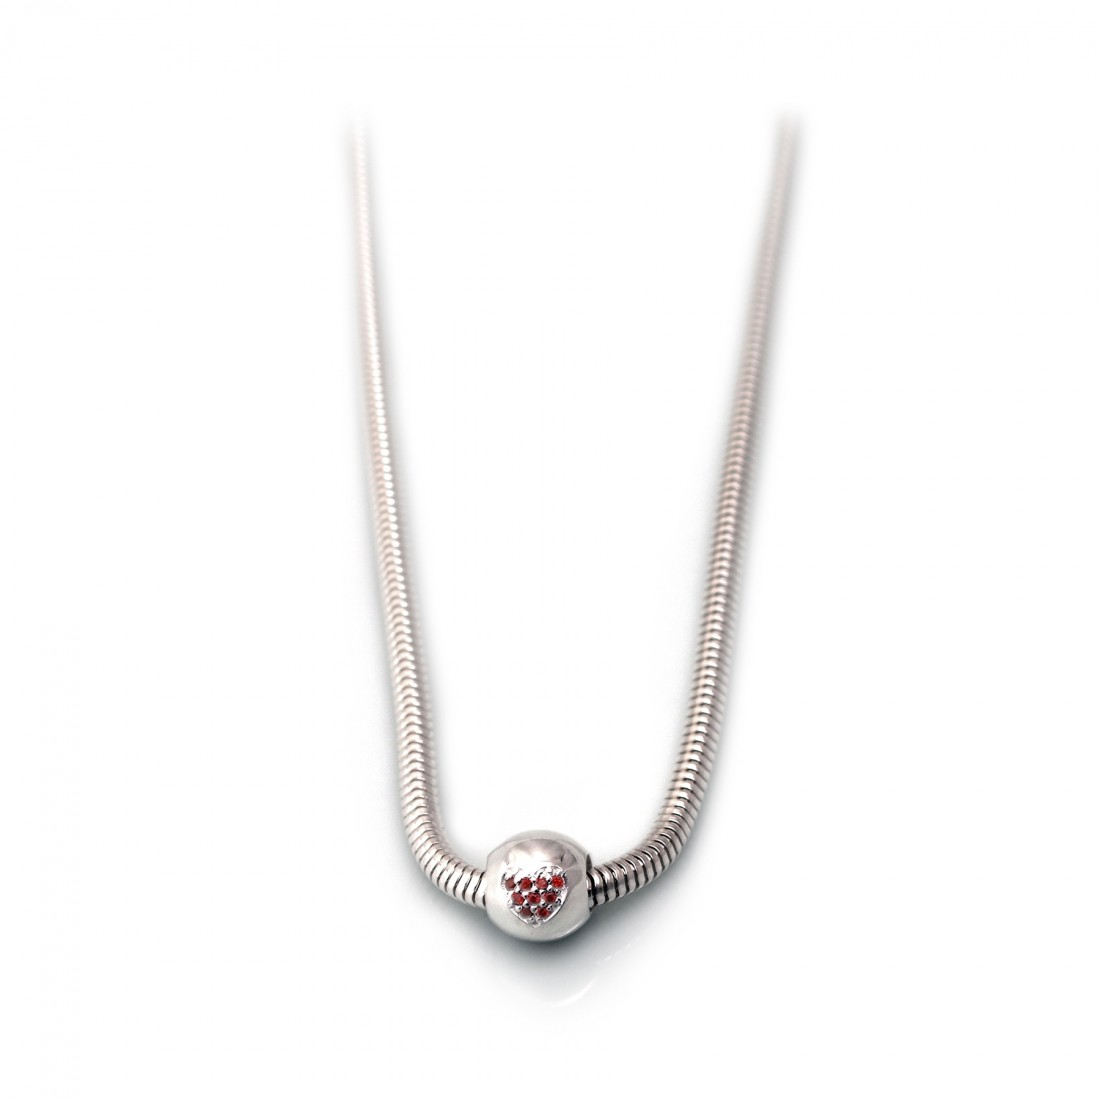 Exclusive Sterling Silver Necklace With Roller Charm Bead With Red Cubic Zirconia Heart